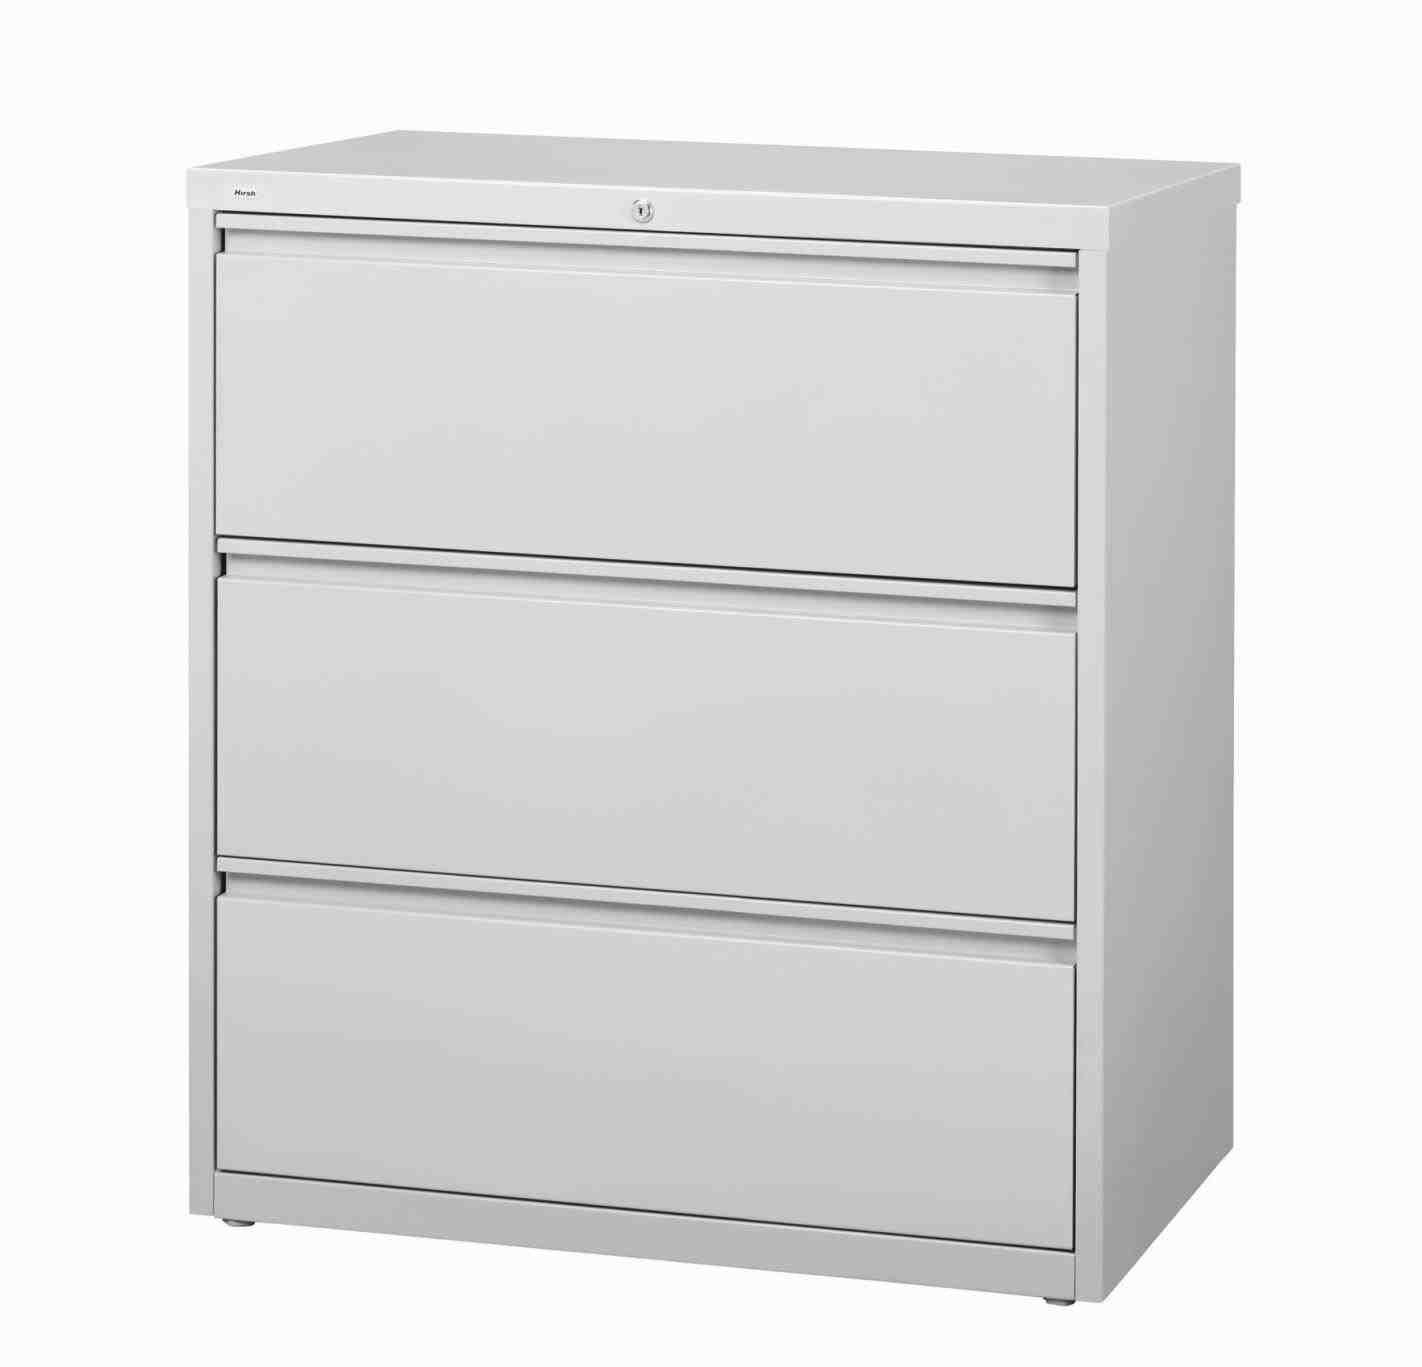 Inspirational White Lateral File Cabinet